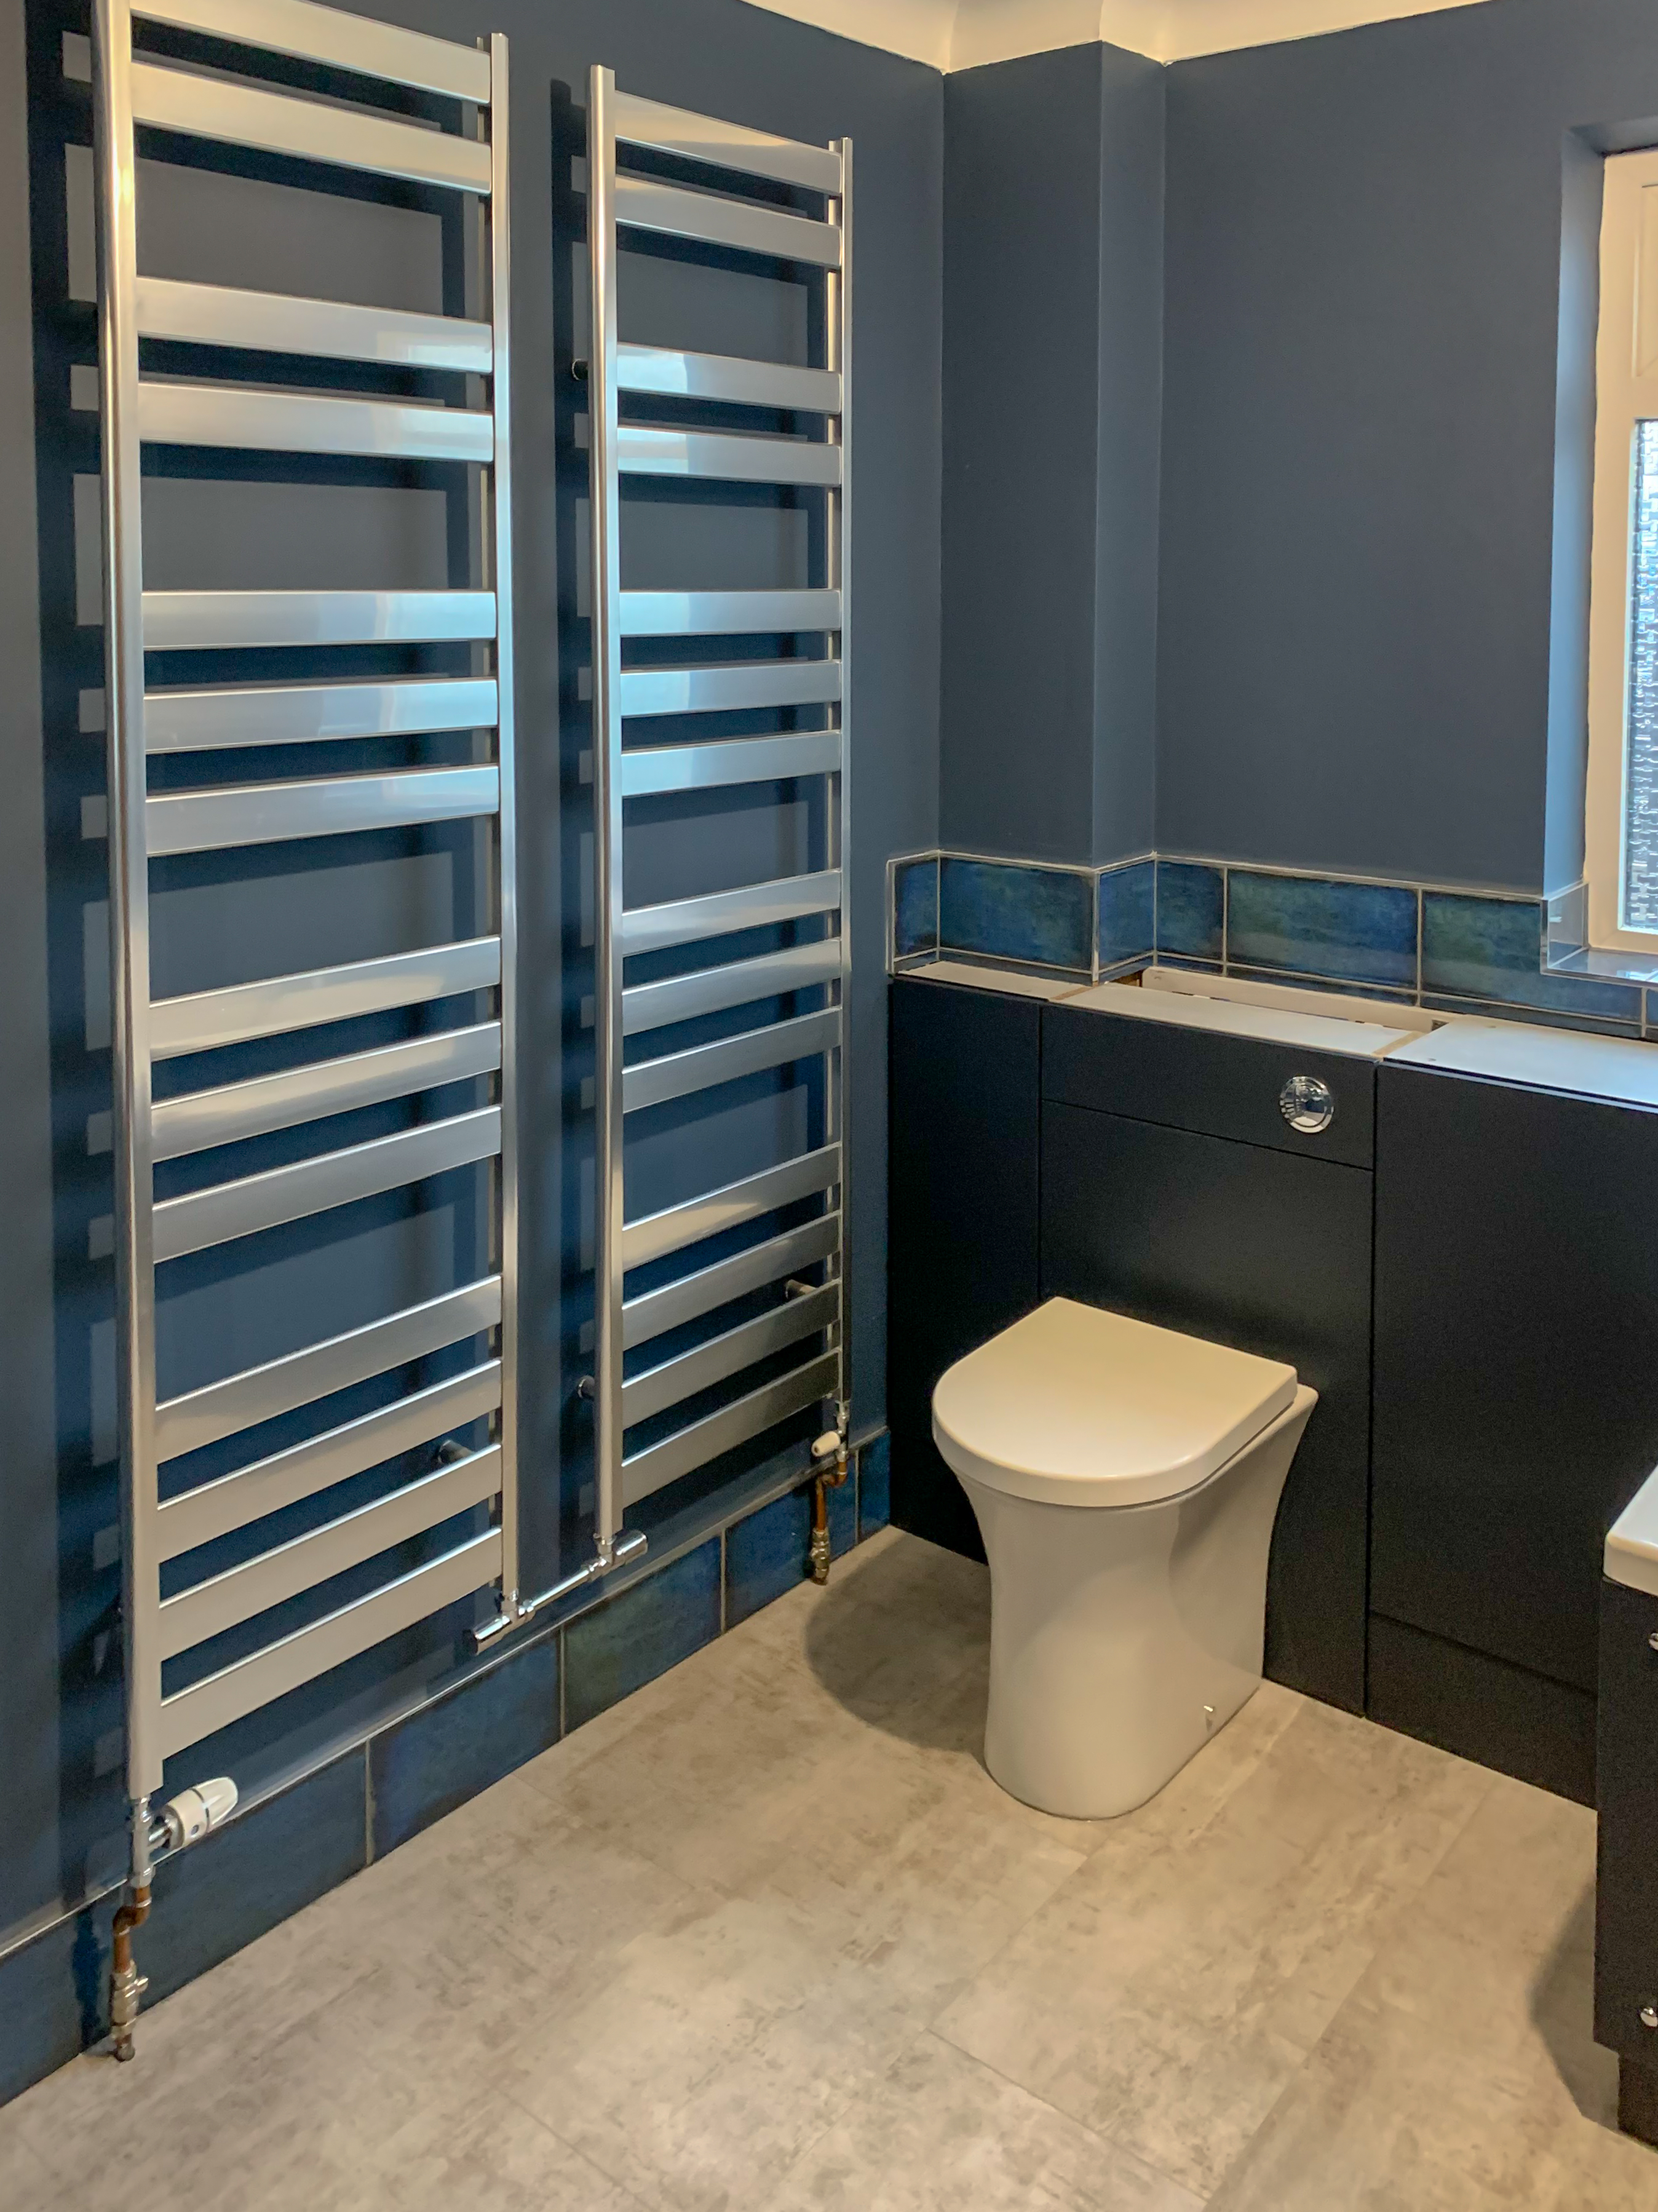 Bespoke cabinets and twin Aluminium high output towel rails